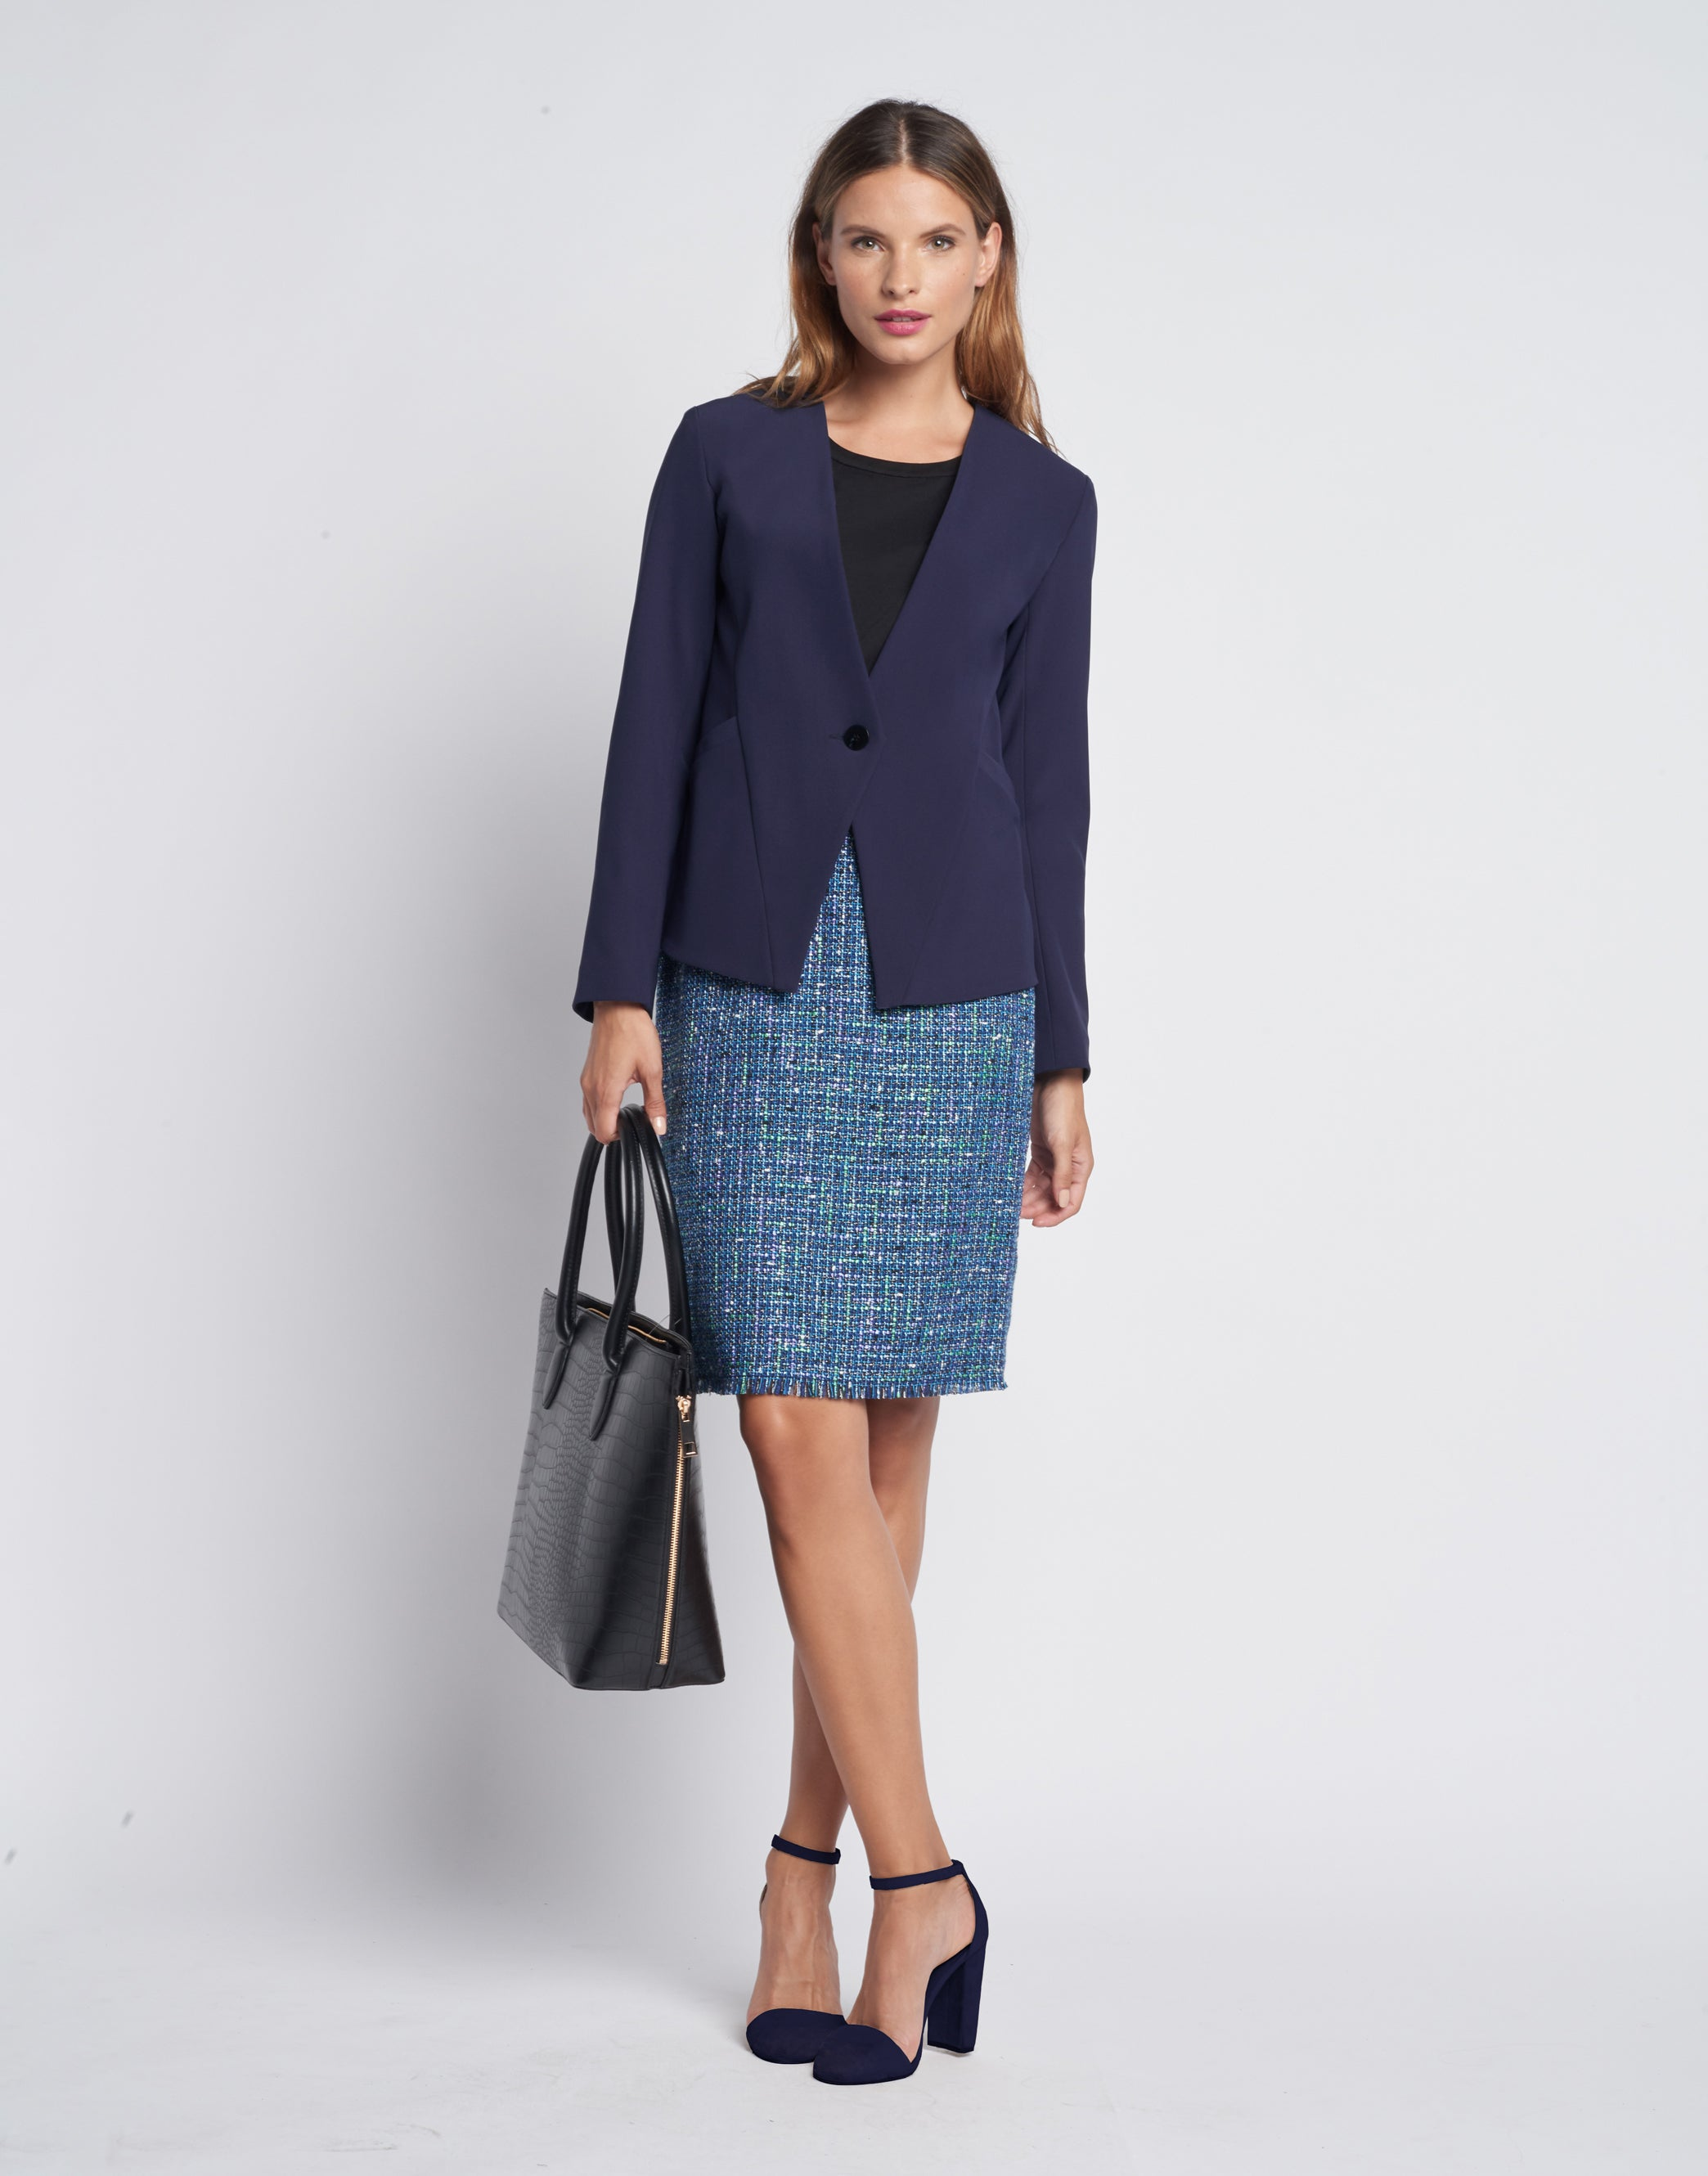 How to Style A Tweed Skirt: Business Formal